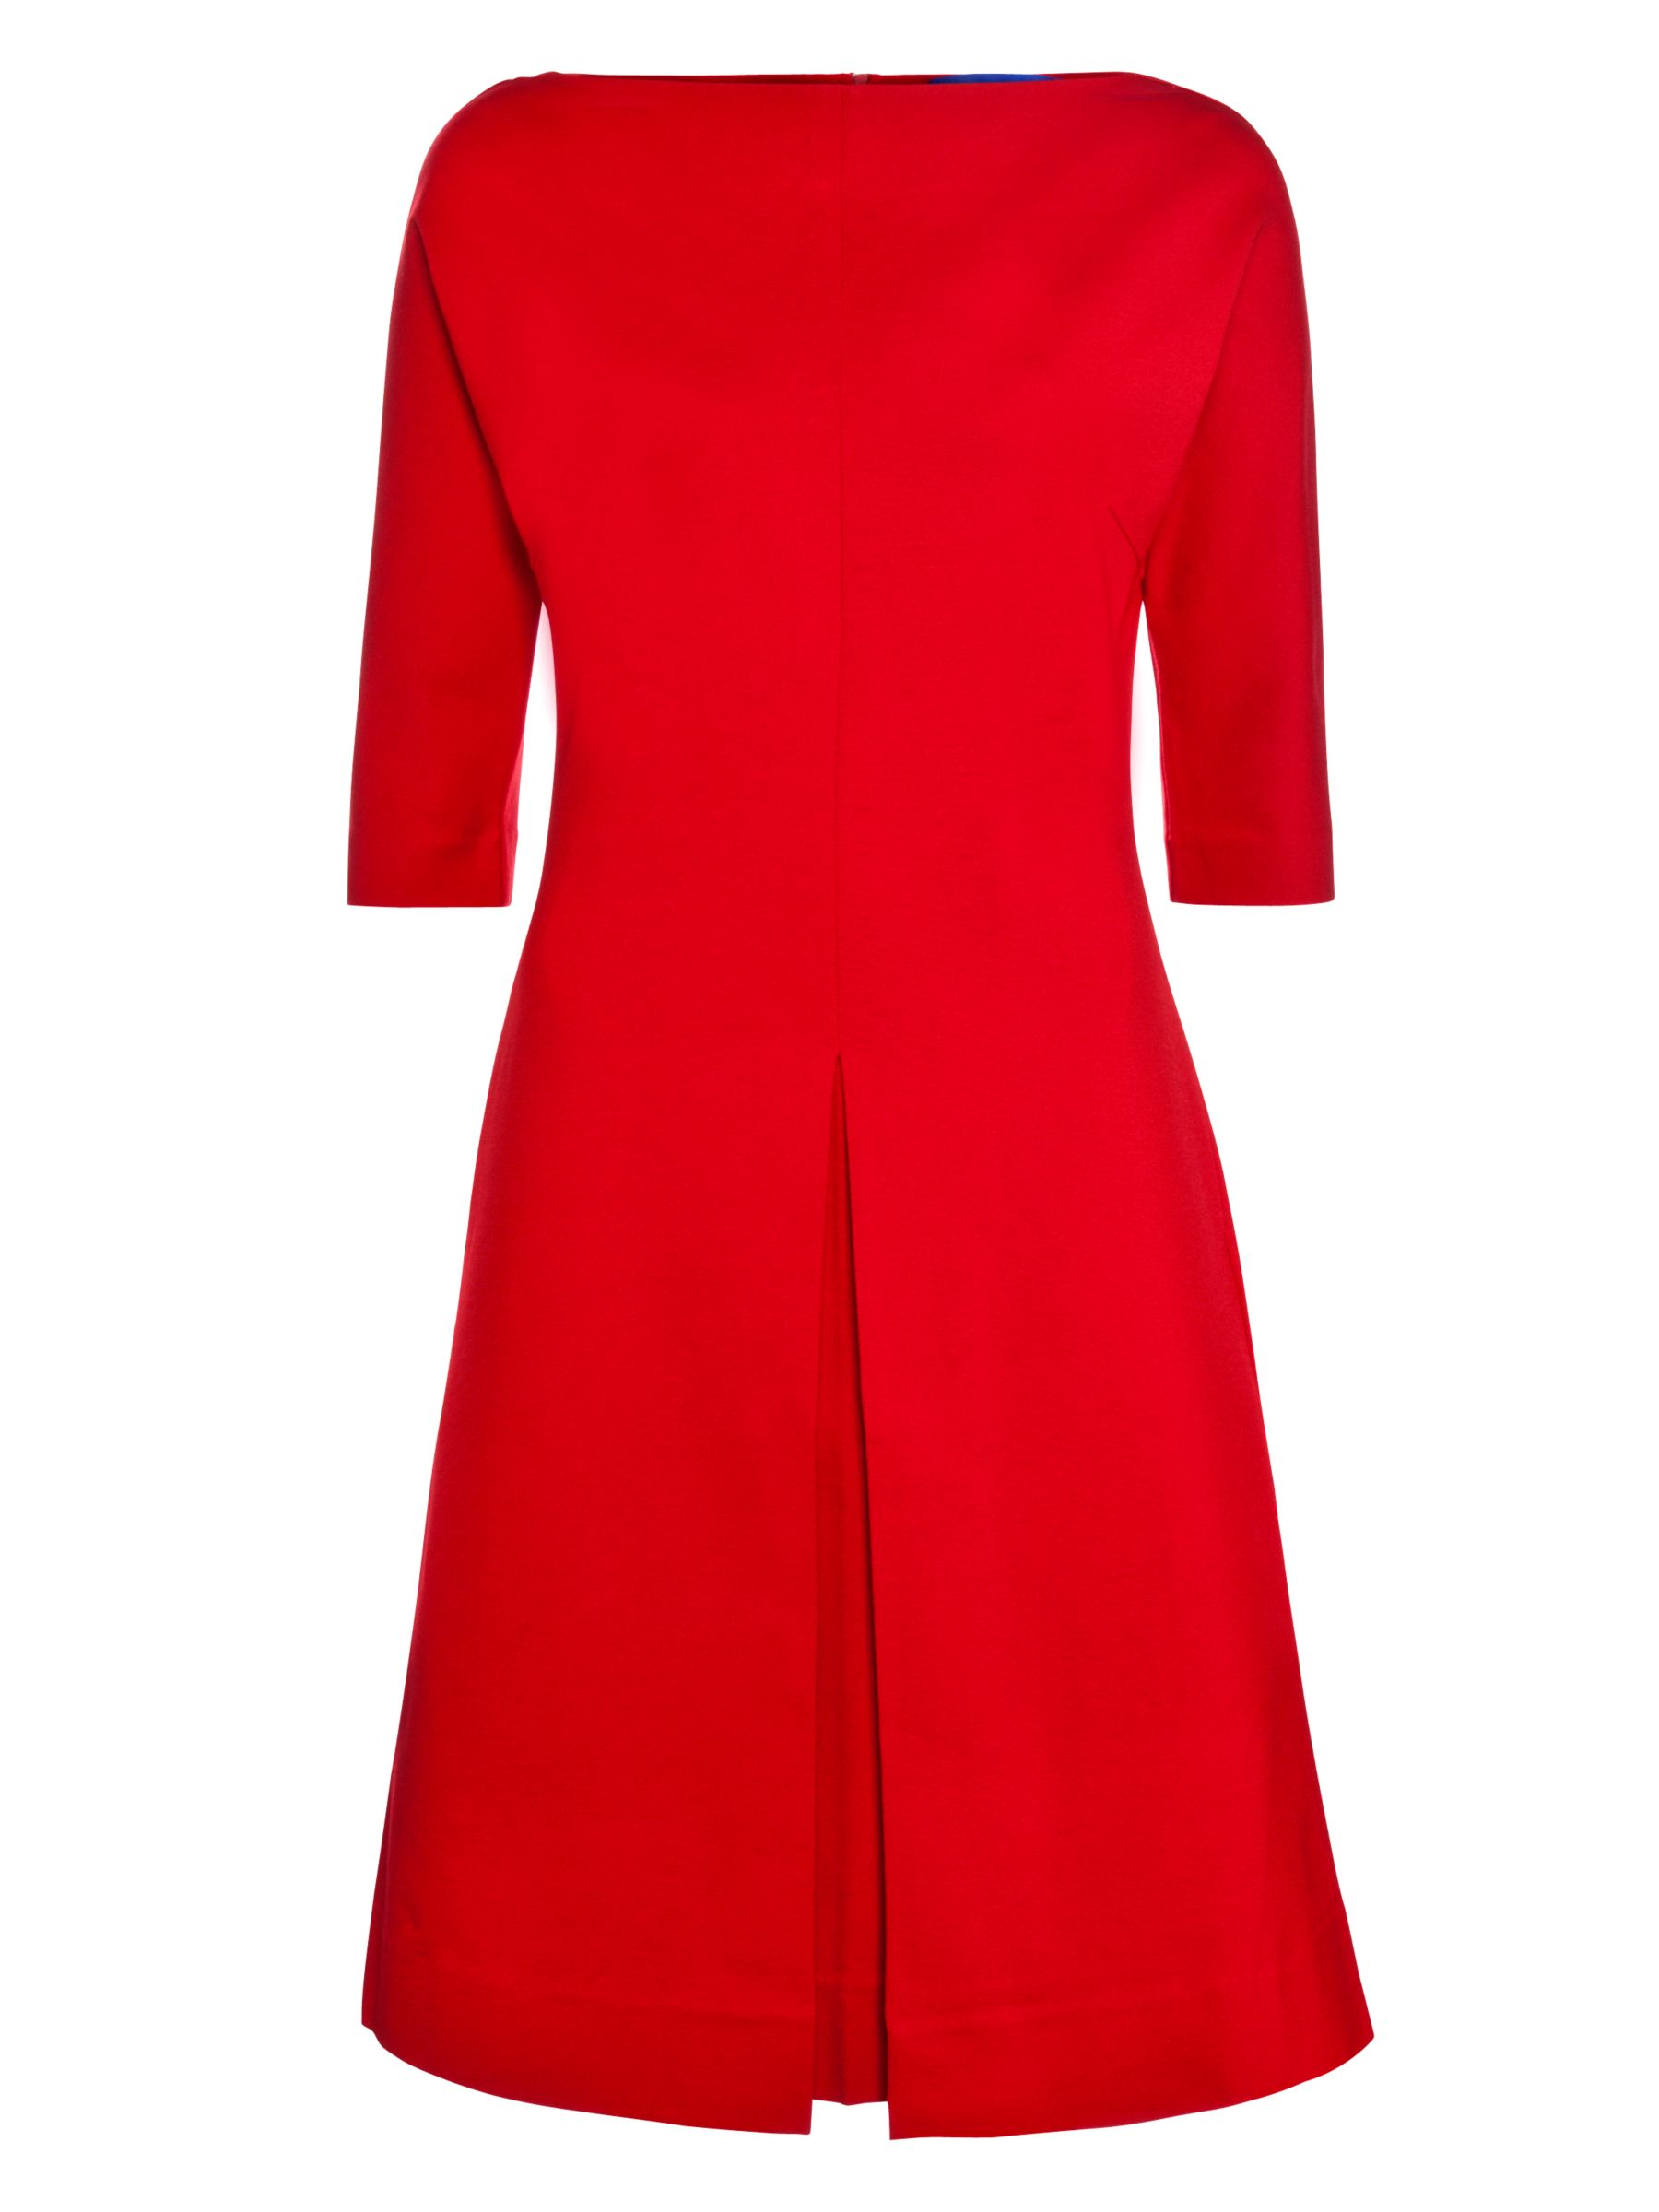 winser shift dress hollywood red, winser, shift, dress, hollywood, red, women, womens dresses, special offers, womenswear offers, latest reductions, womens dresses offers, gifts, valentines day, red dress, 1774069